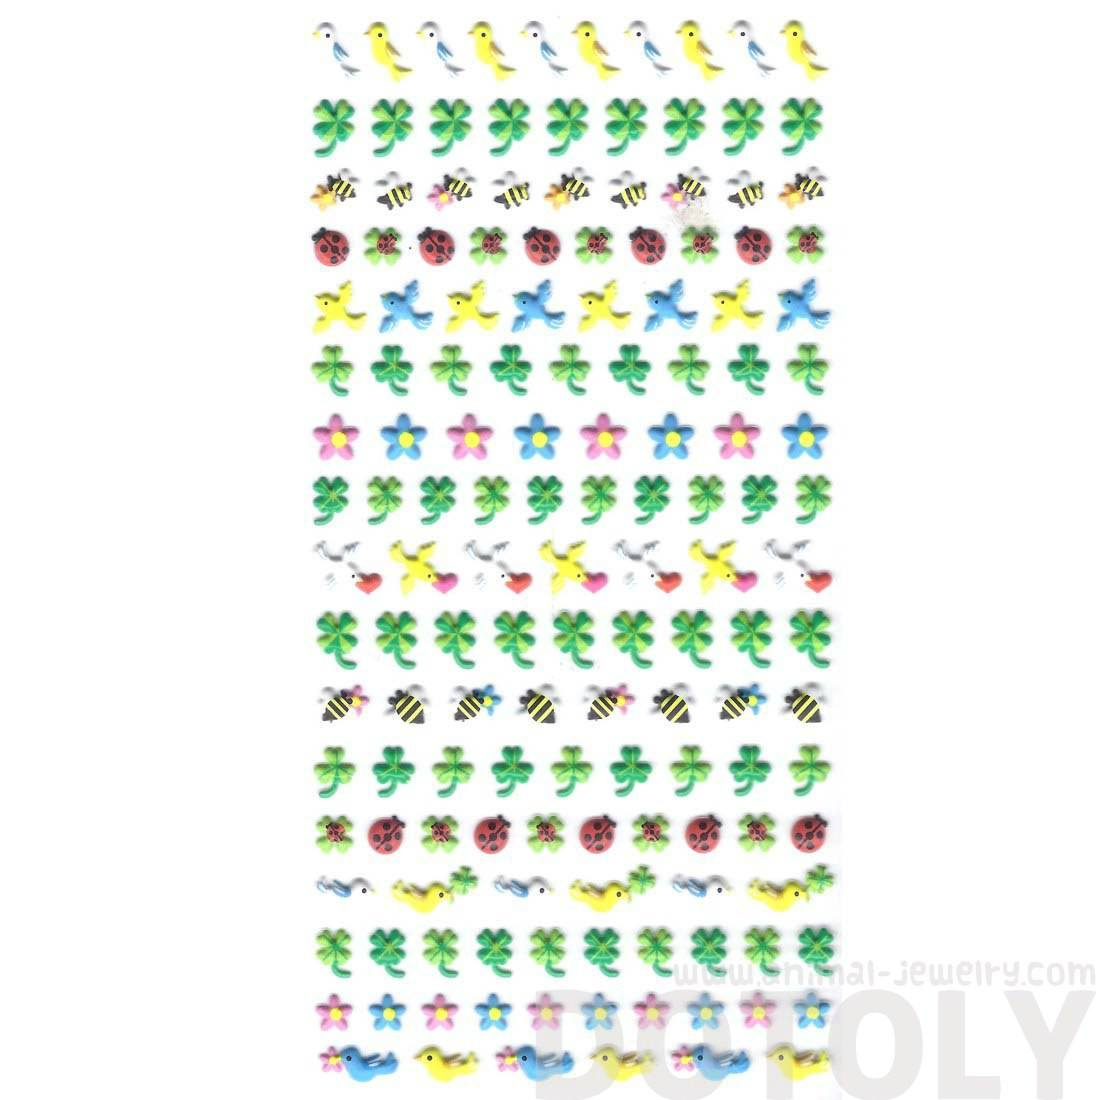 Birds Doves Bees Ladybugs and Four Leaf Clover Puffy Stickers for Kids